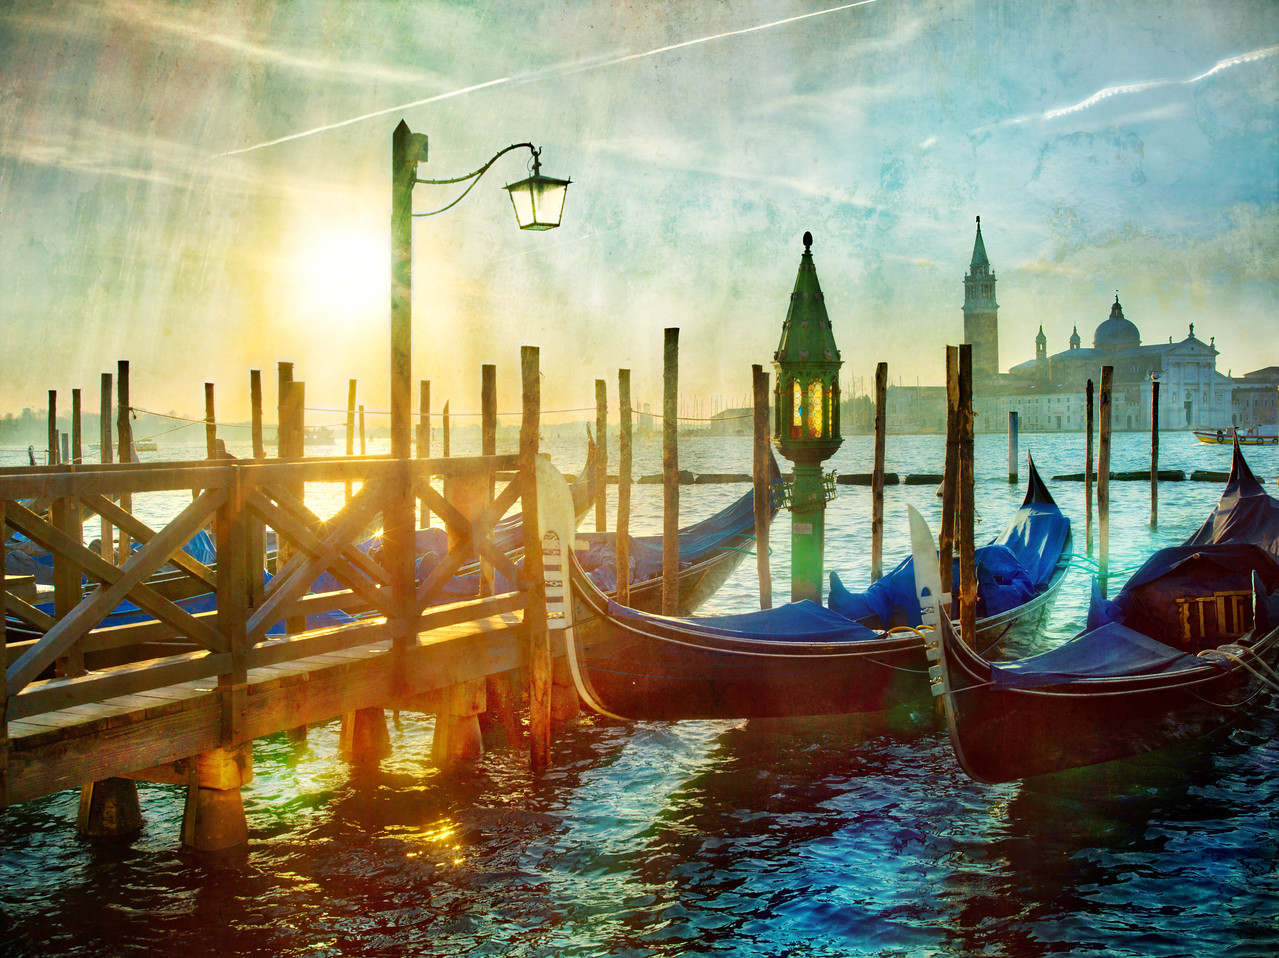 Morning in Venice at the Gondolas